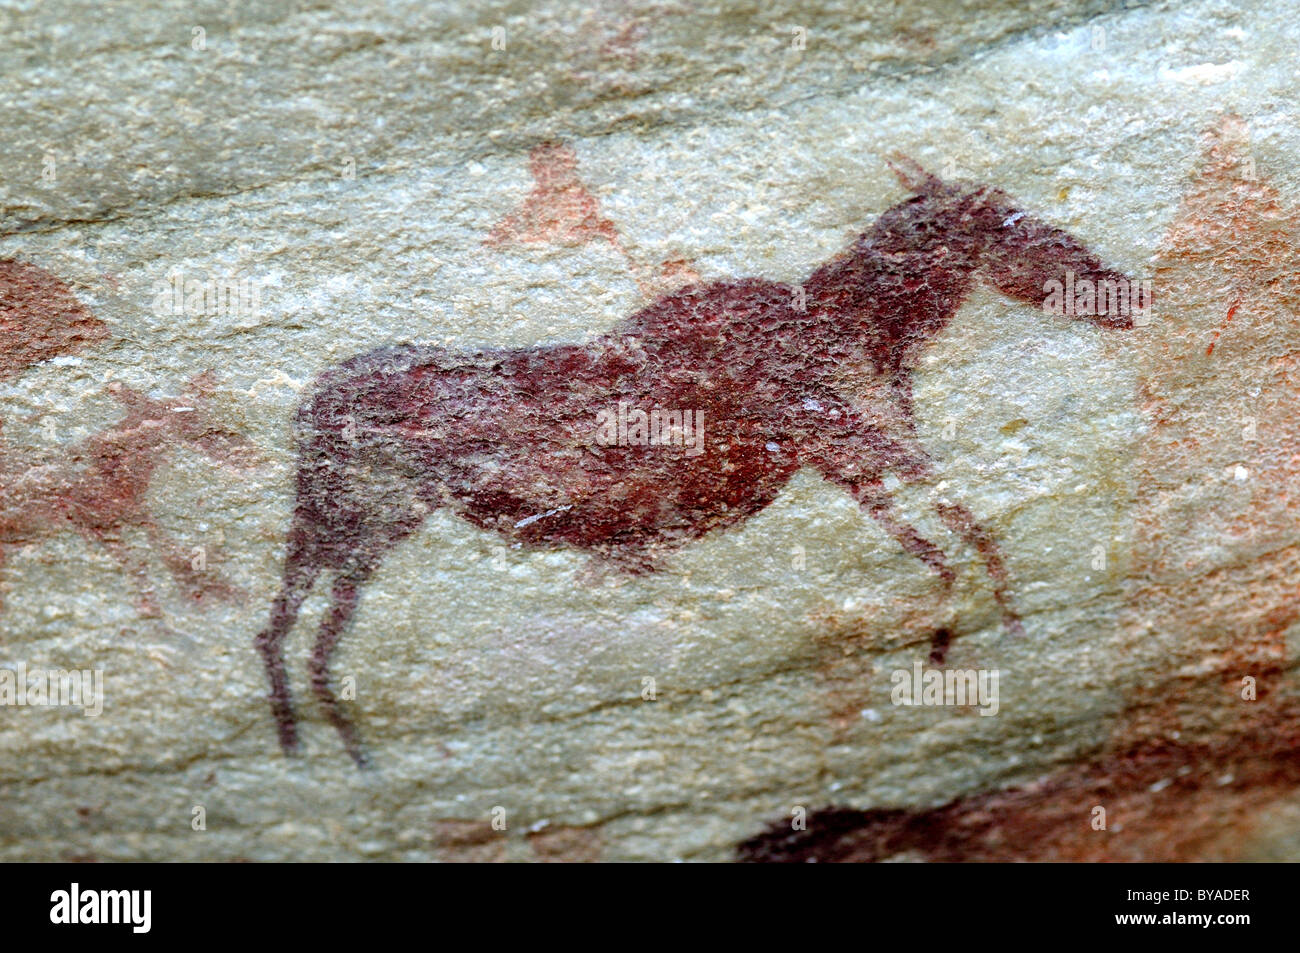 Prehistoric representation of an eland antelope, zebra or quagga, rock paintings of the Bushmen on the Sevilla Rock - Stock Image